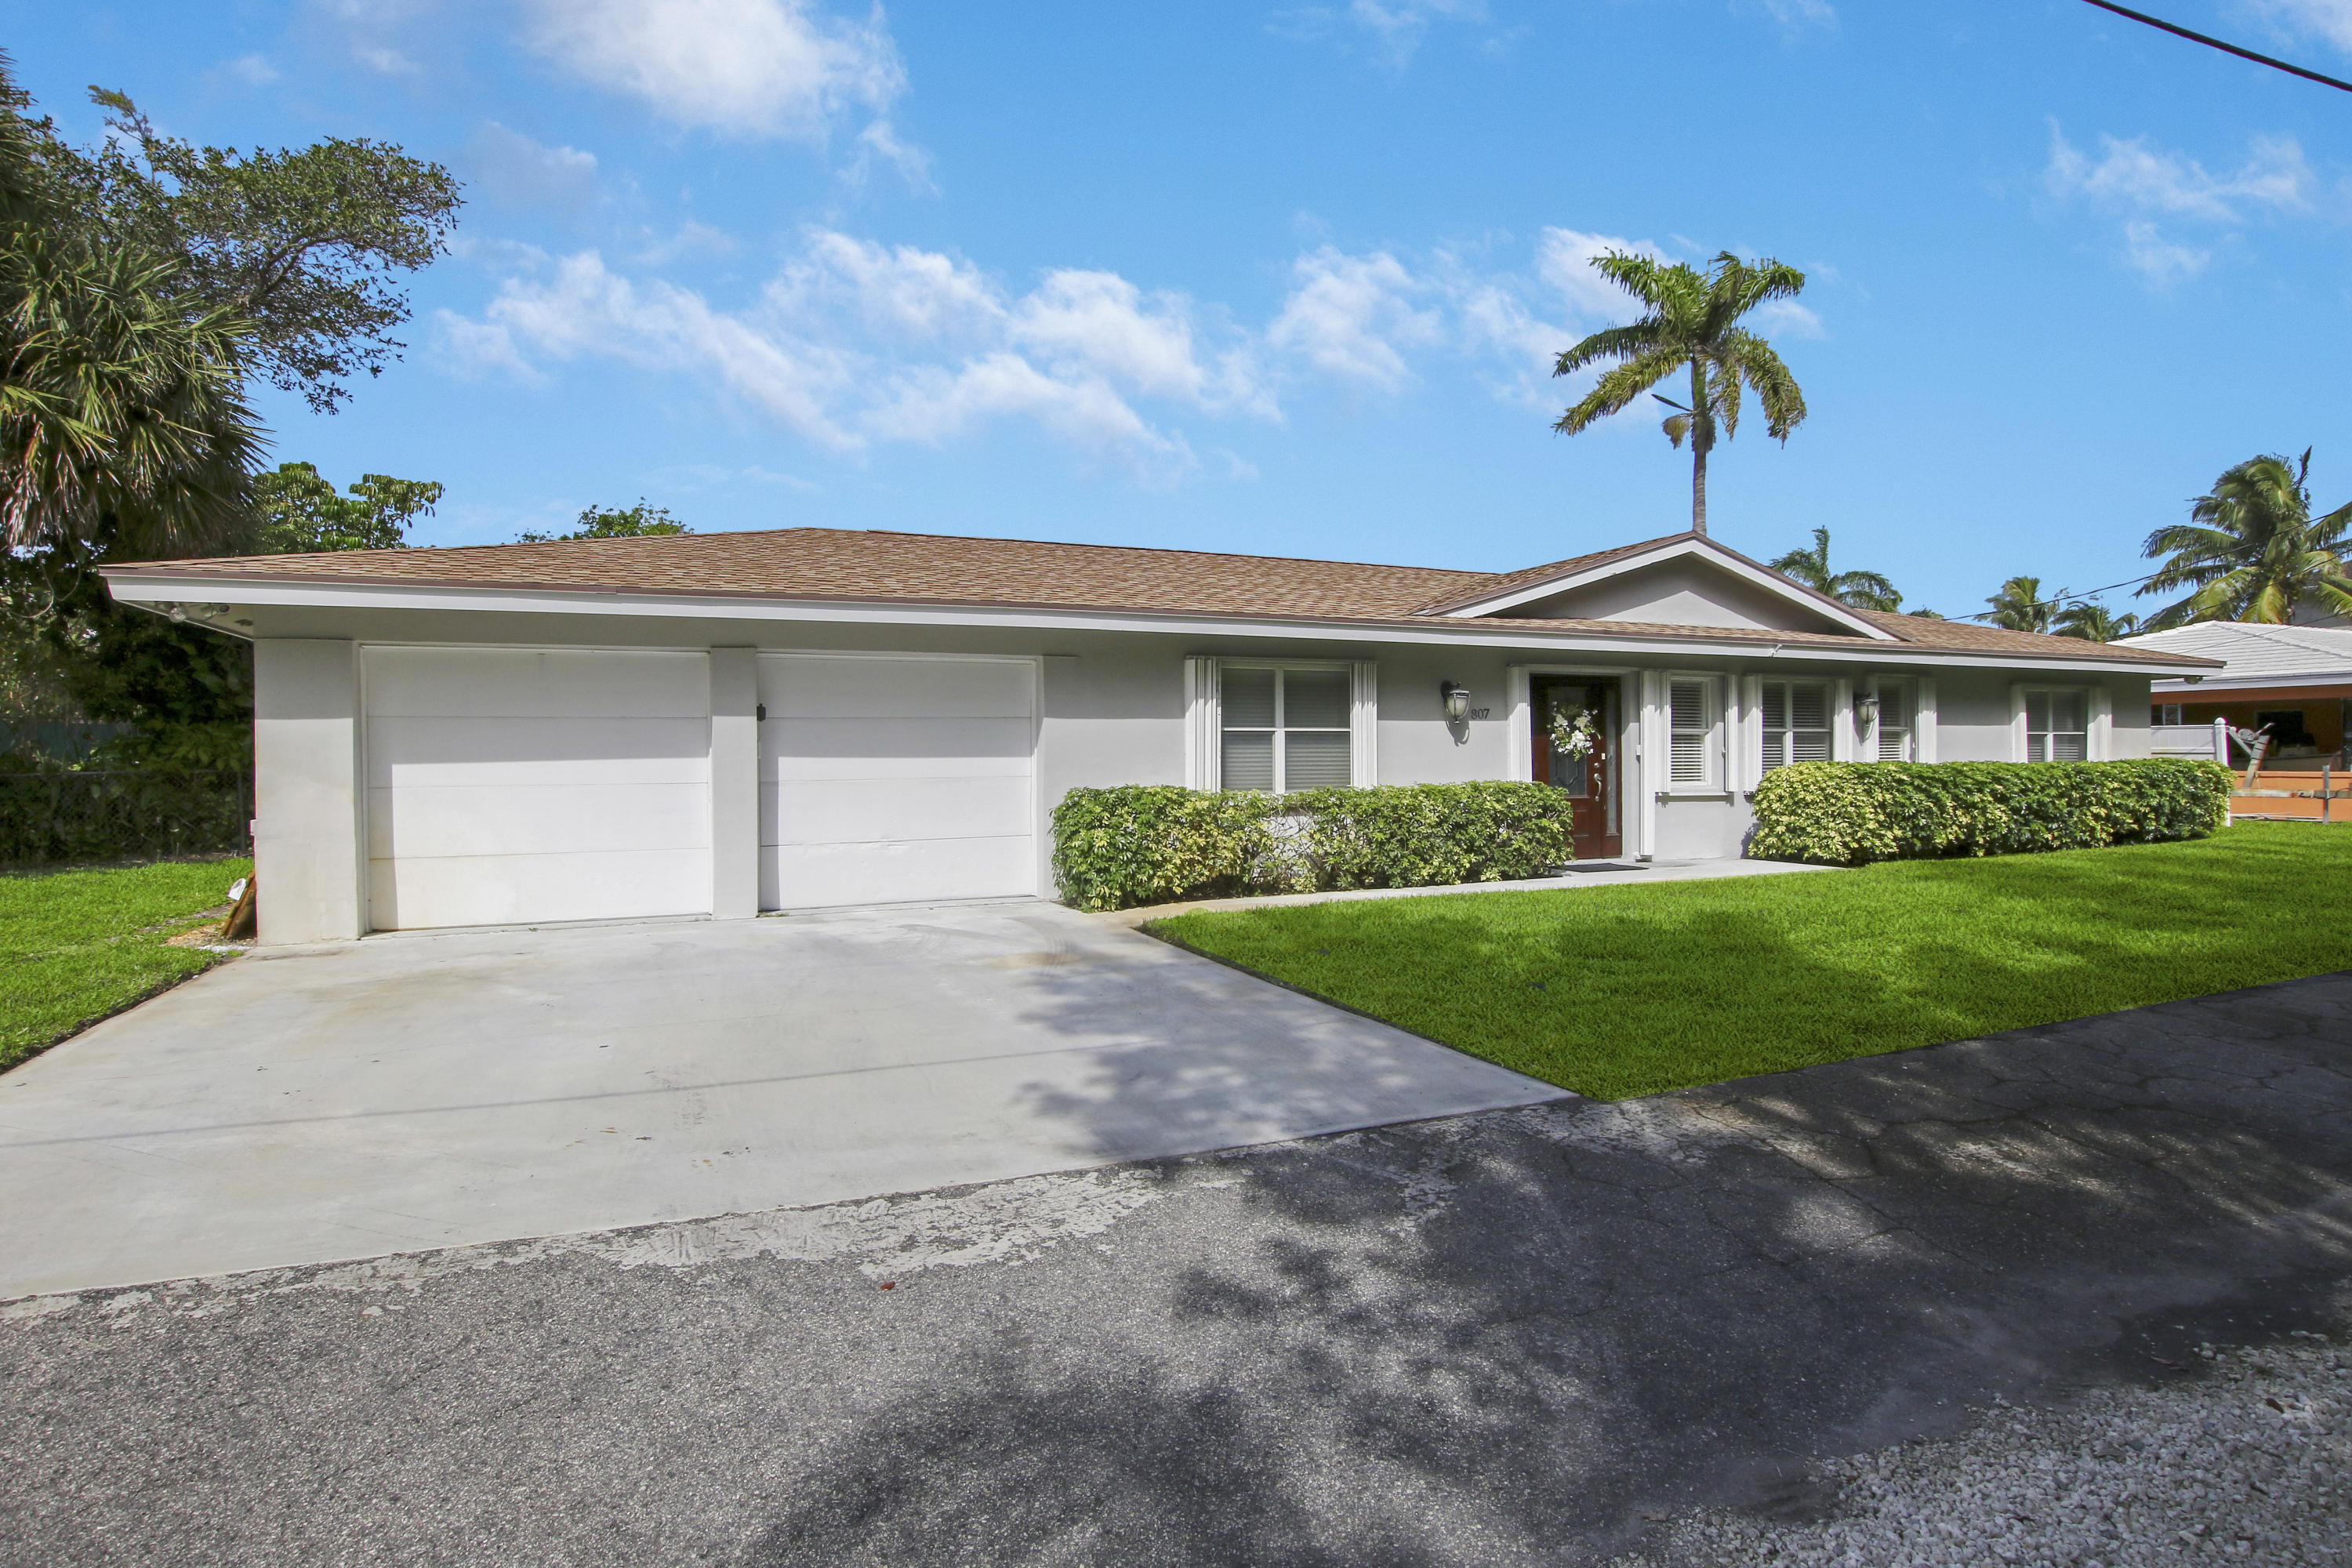 Home for sale in Acreage & Unrec Delray Beach Florida